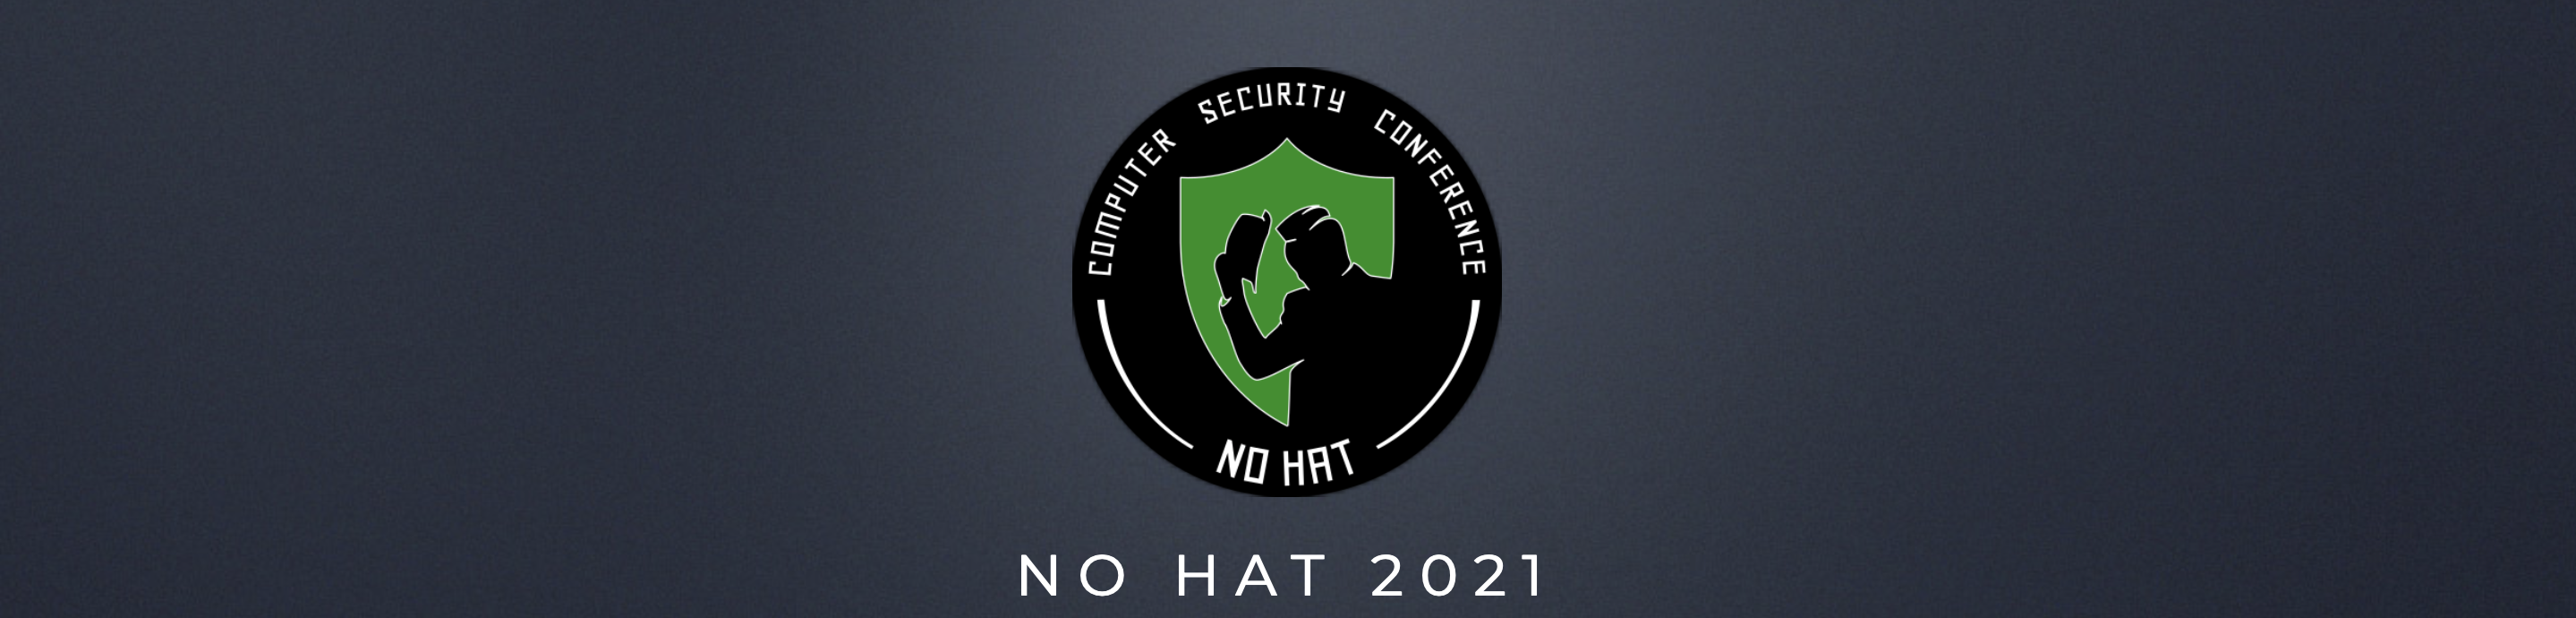 NO HAT 2021 - Call For Papers